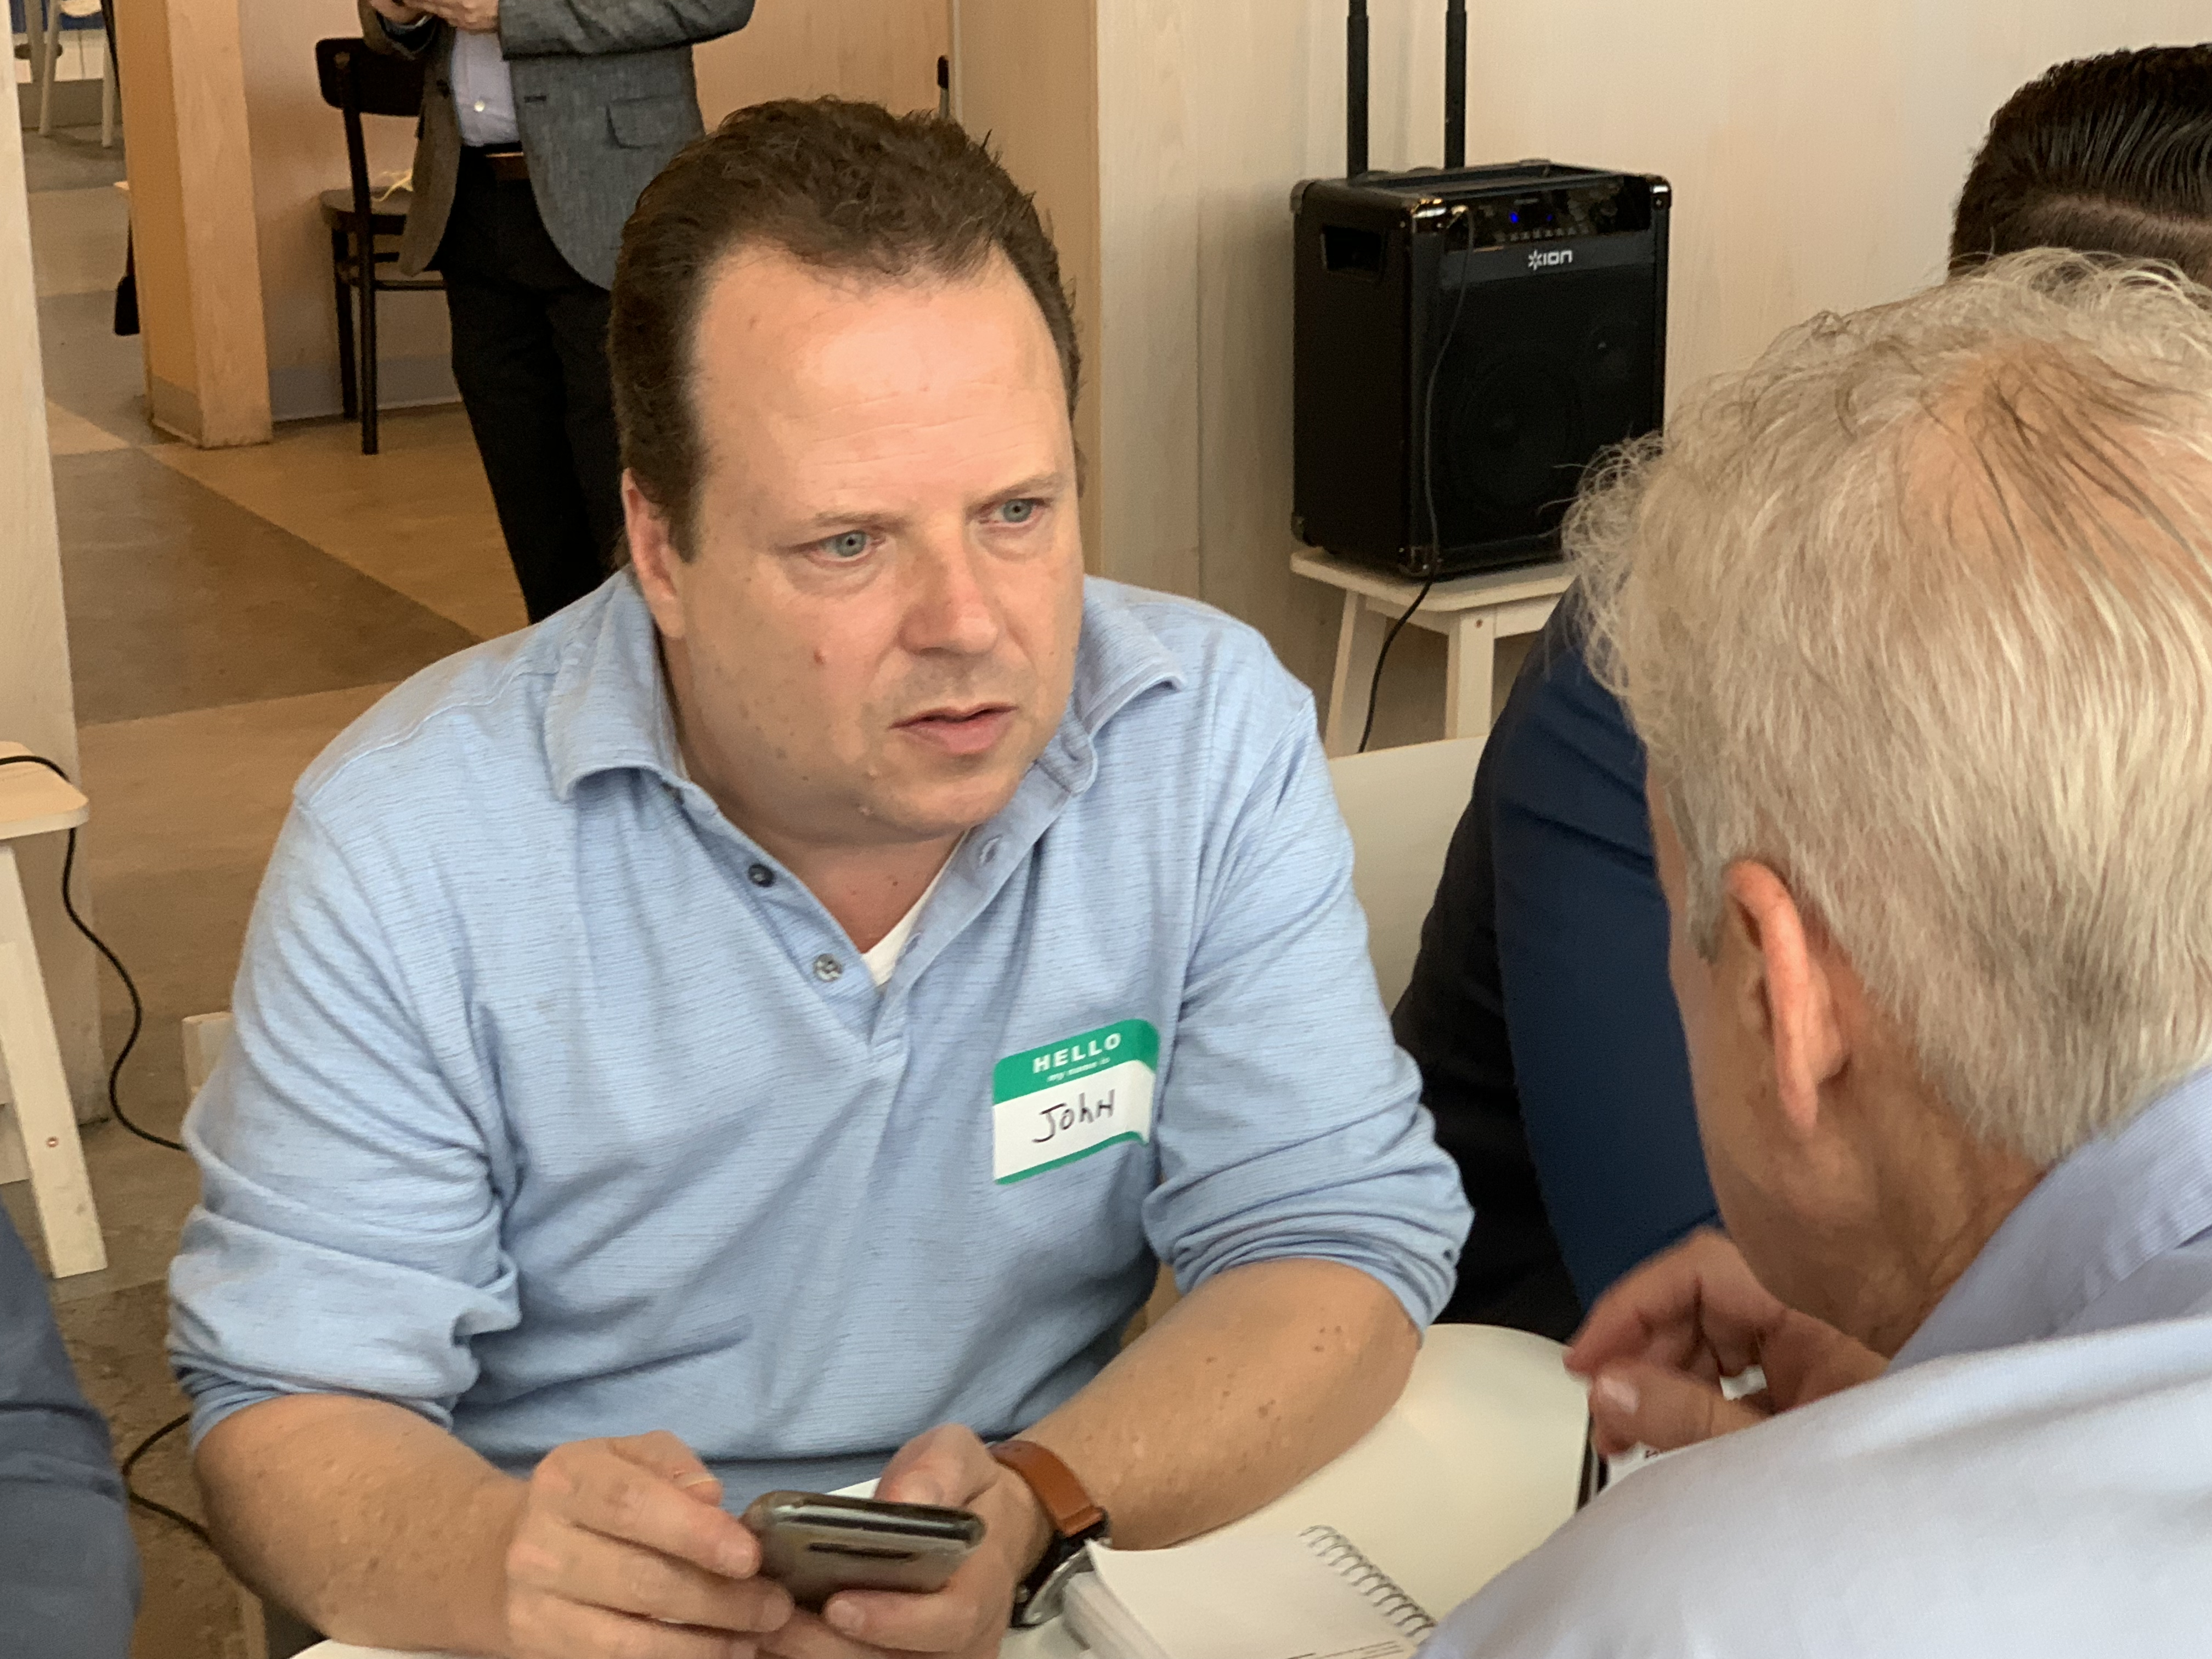 Doral Chamber of Commerce IKEA Speed Networking Event, member writing down phone number and taking notes.